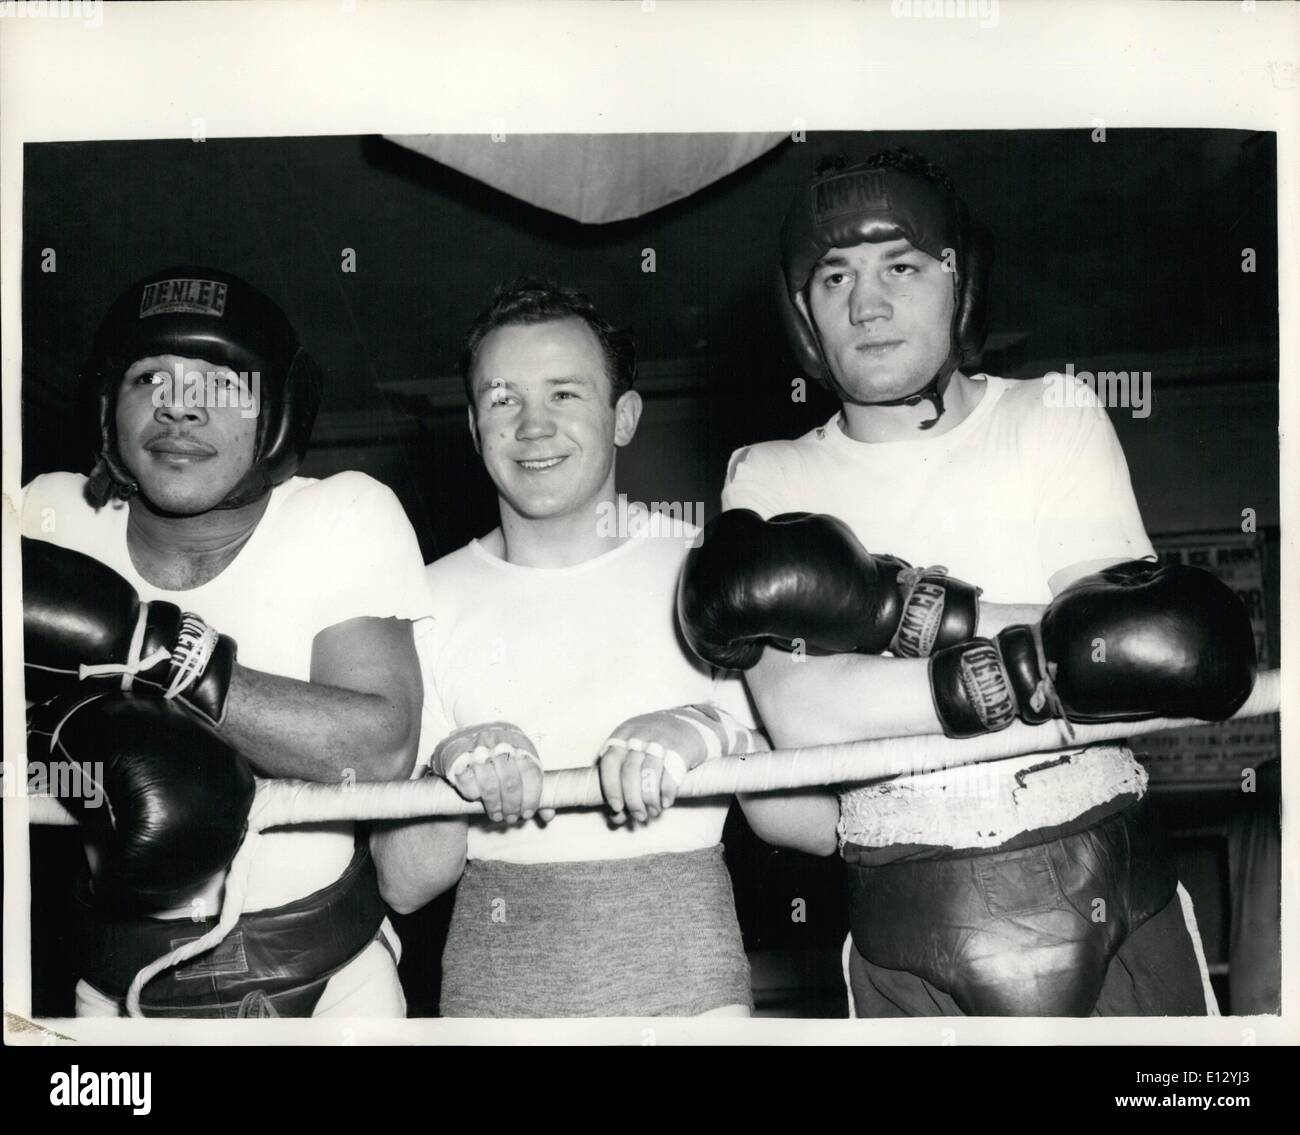 Feb. 25, 2012 - Three Boxing stars in Training Pompey- McCarthy and Lazar. Three stars of the Boxing ring - seen at the Thomas A' Beckett Gymnasium , Old kent road where they are in training for forthcoming contests... They are L-R:- Yolande Pompey from Trinidad who meets Archie Moore the world Cruiser weight champion at Harringay in March; Sammy McCarthy who meets holder of the British light weight title Frank Johnson at the Royal Albert Hall on January 24th - Stock Image